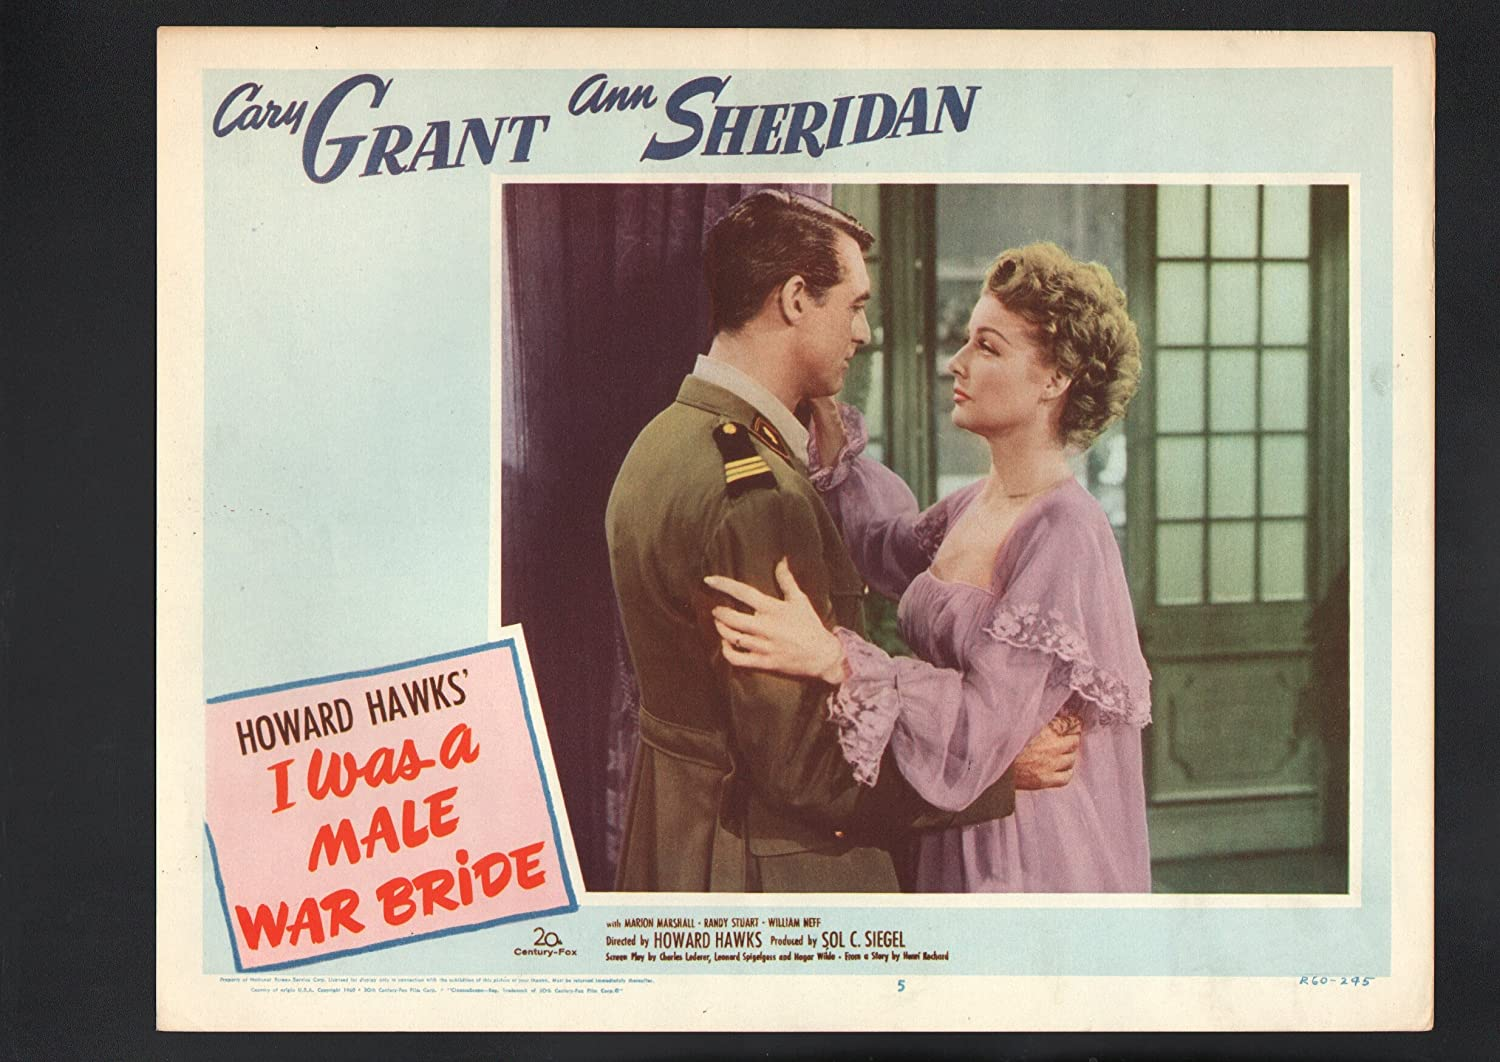 MOVIE POSTER: I Was New product a Male Card Bride Very popular! M #5-1960-Marion Lobby War